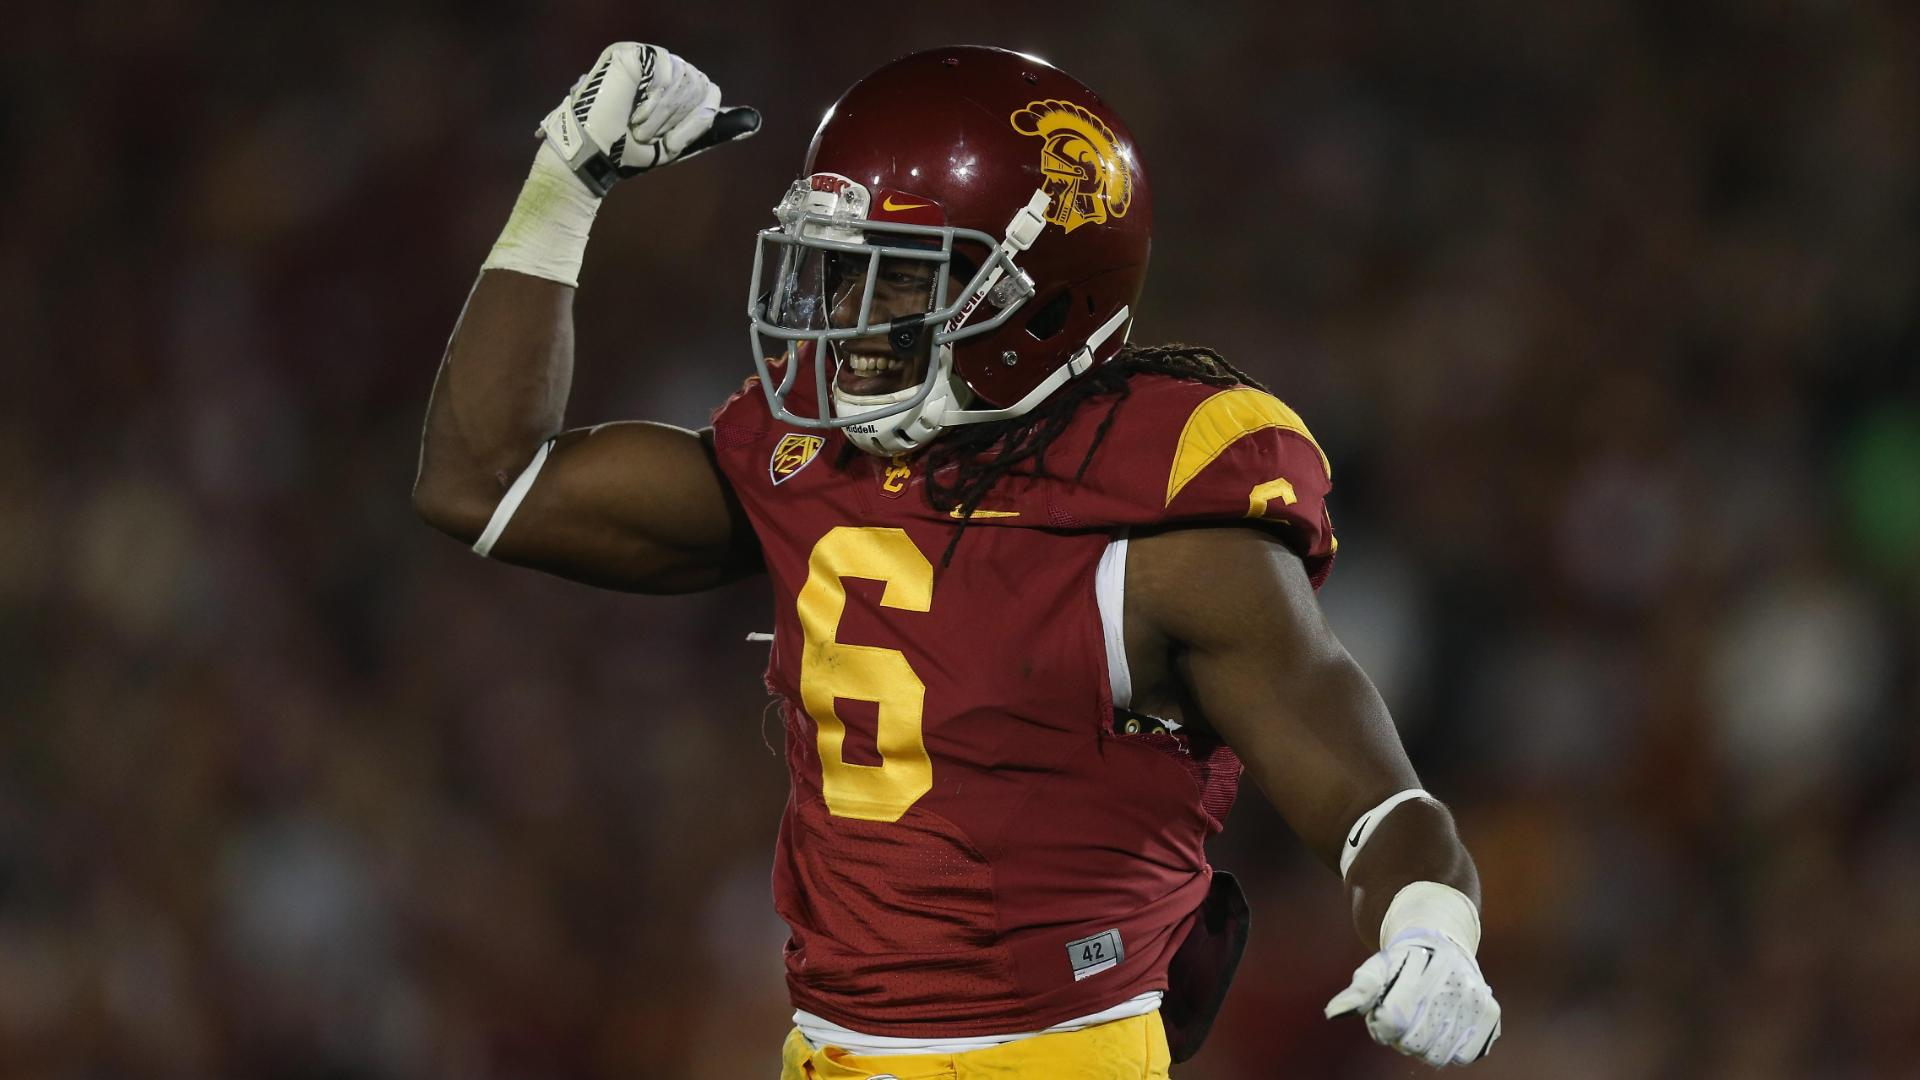 USC's Josh Shaw Out Indefinitely